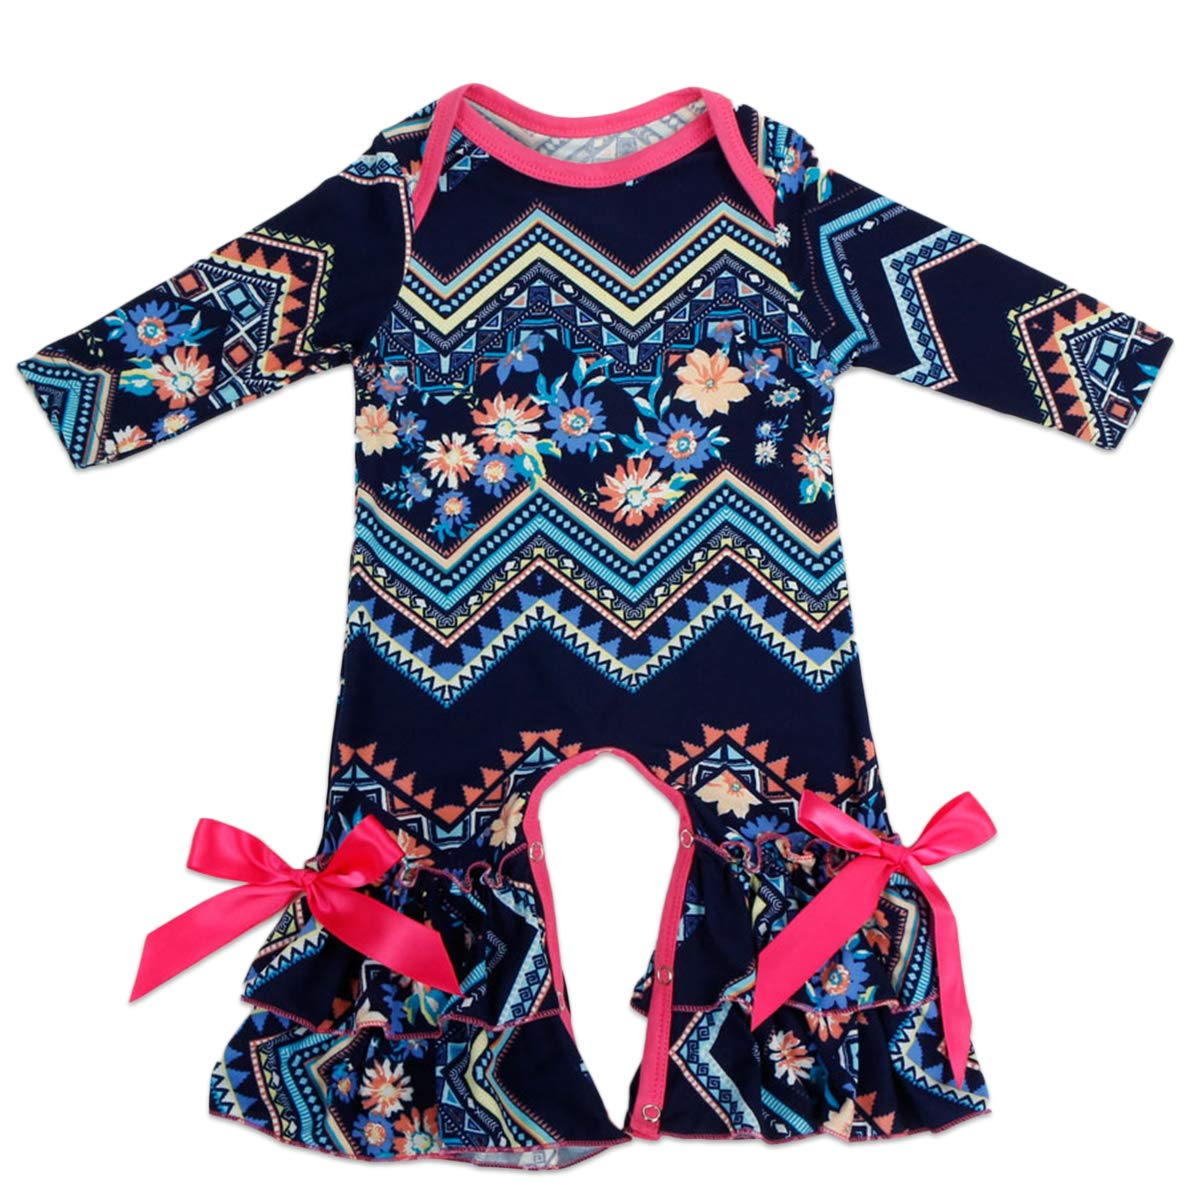 37b3b5f35b3 Amazon.com  FYMNSI Baby Girls Icing Ruffle Romper Floral Jumpsuit Long  Sleeve Pajamas Homewear Birthday Xmas Party Outfits  Clothing